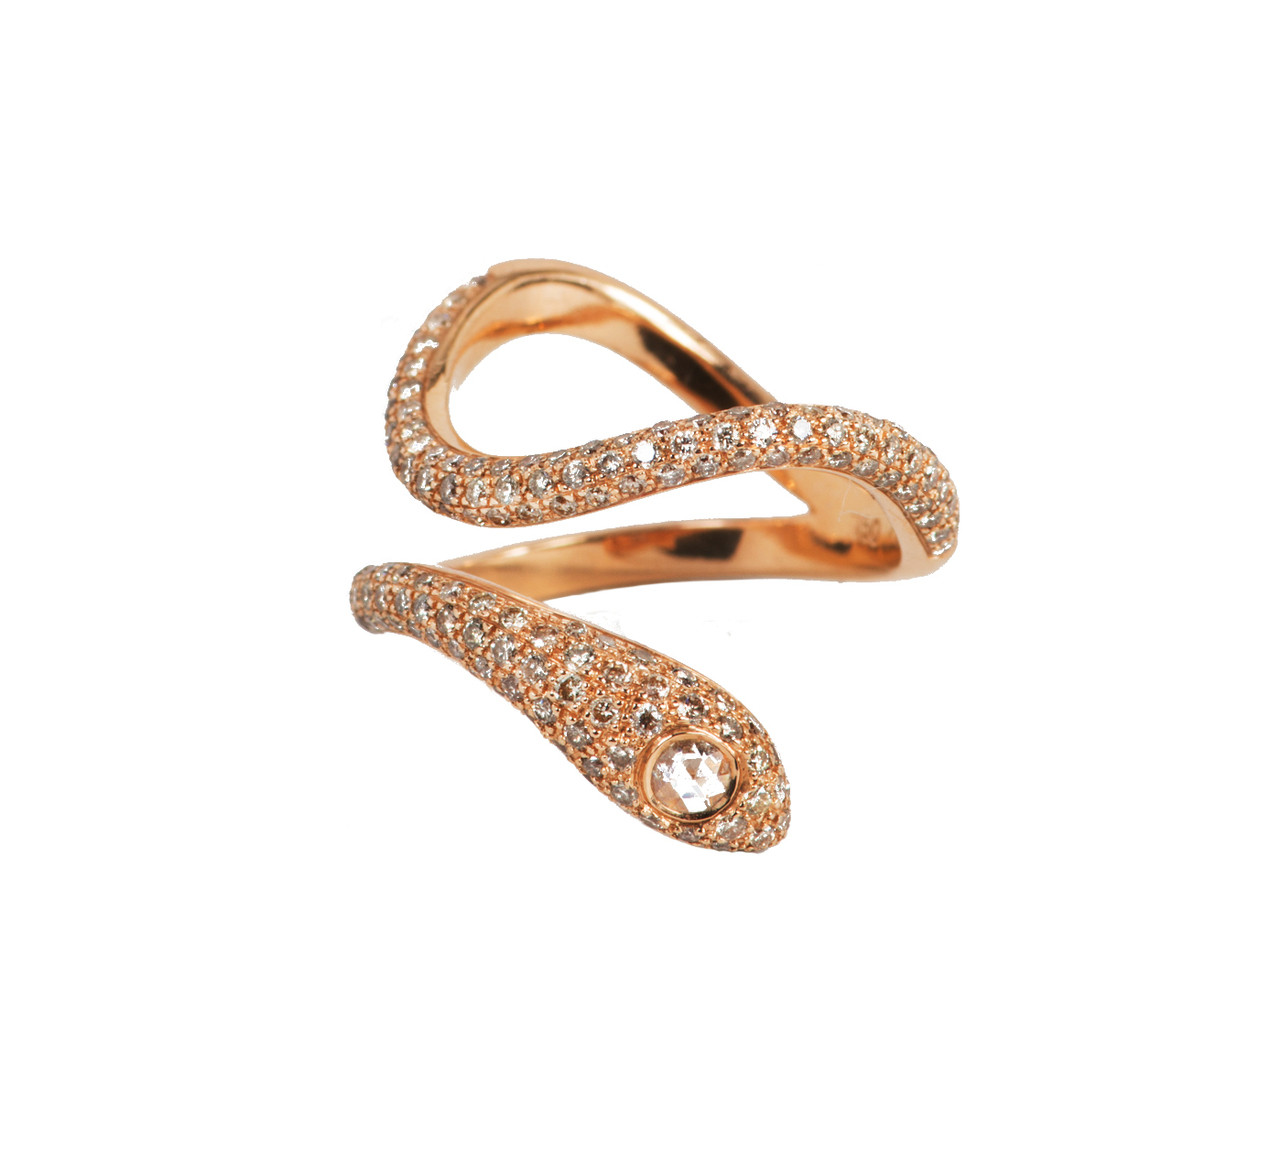 jewelry product diamond kimberly klosterman bracelet gold snake and